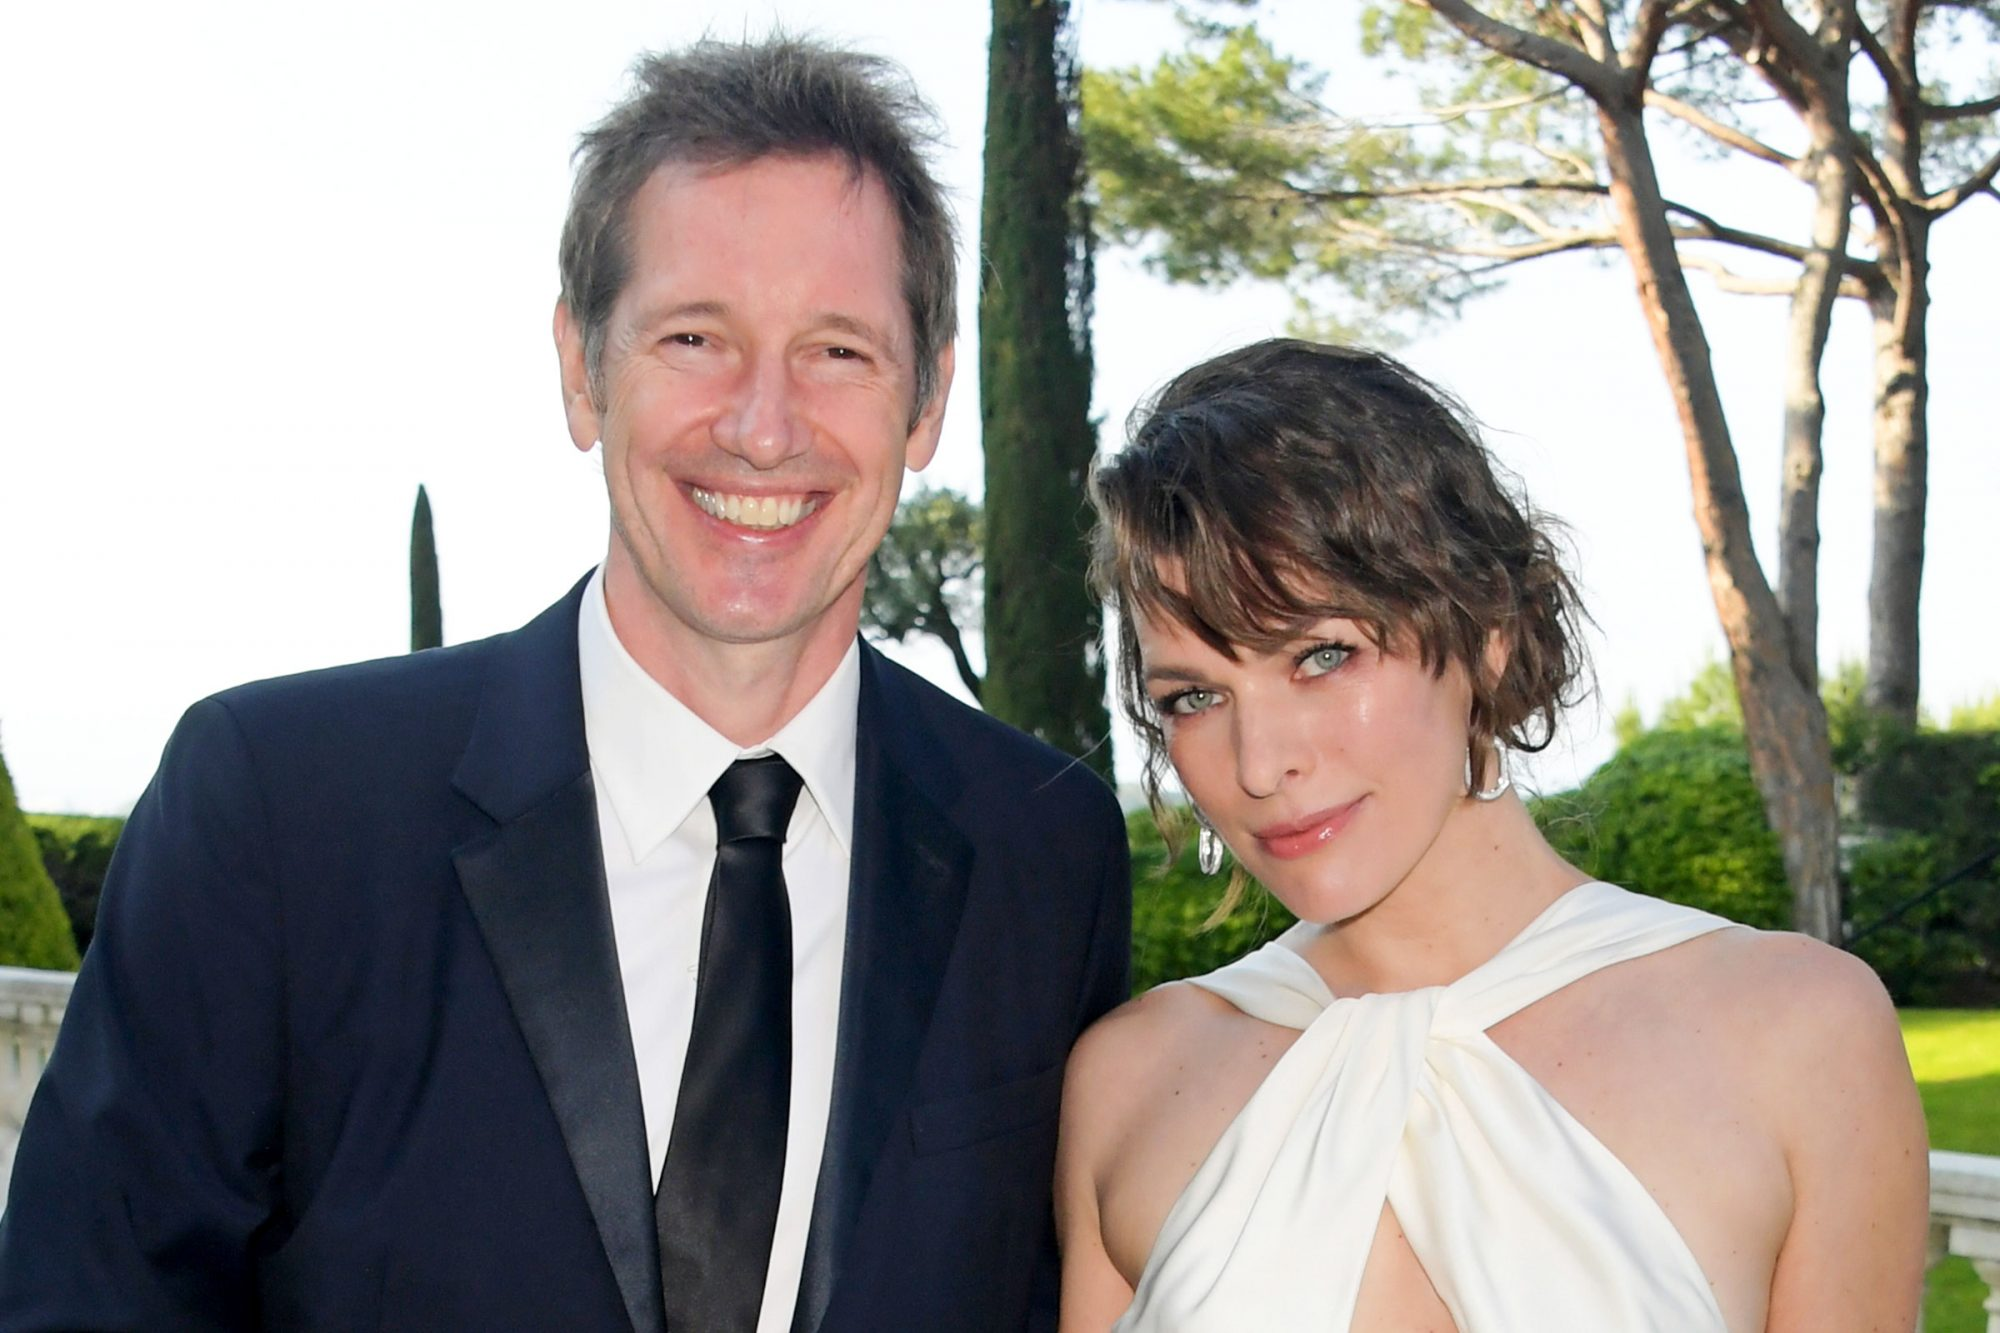 Paul W. S. Anderson and Milla Jovovich